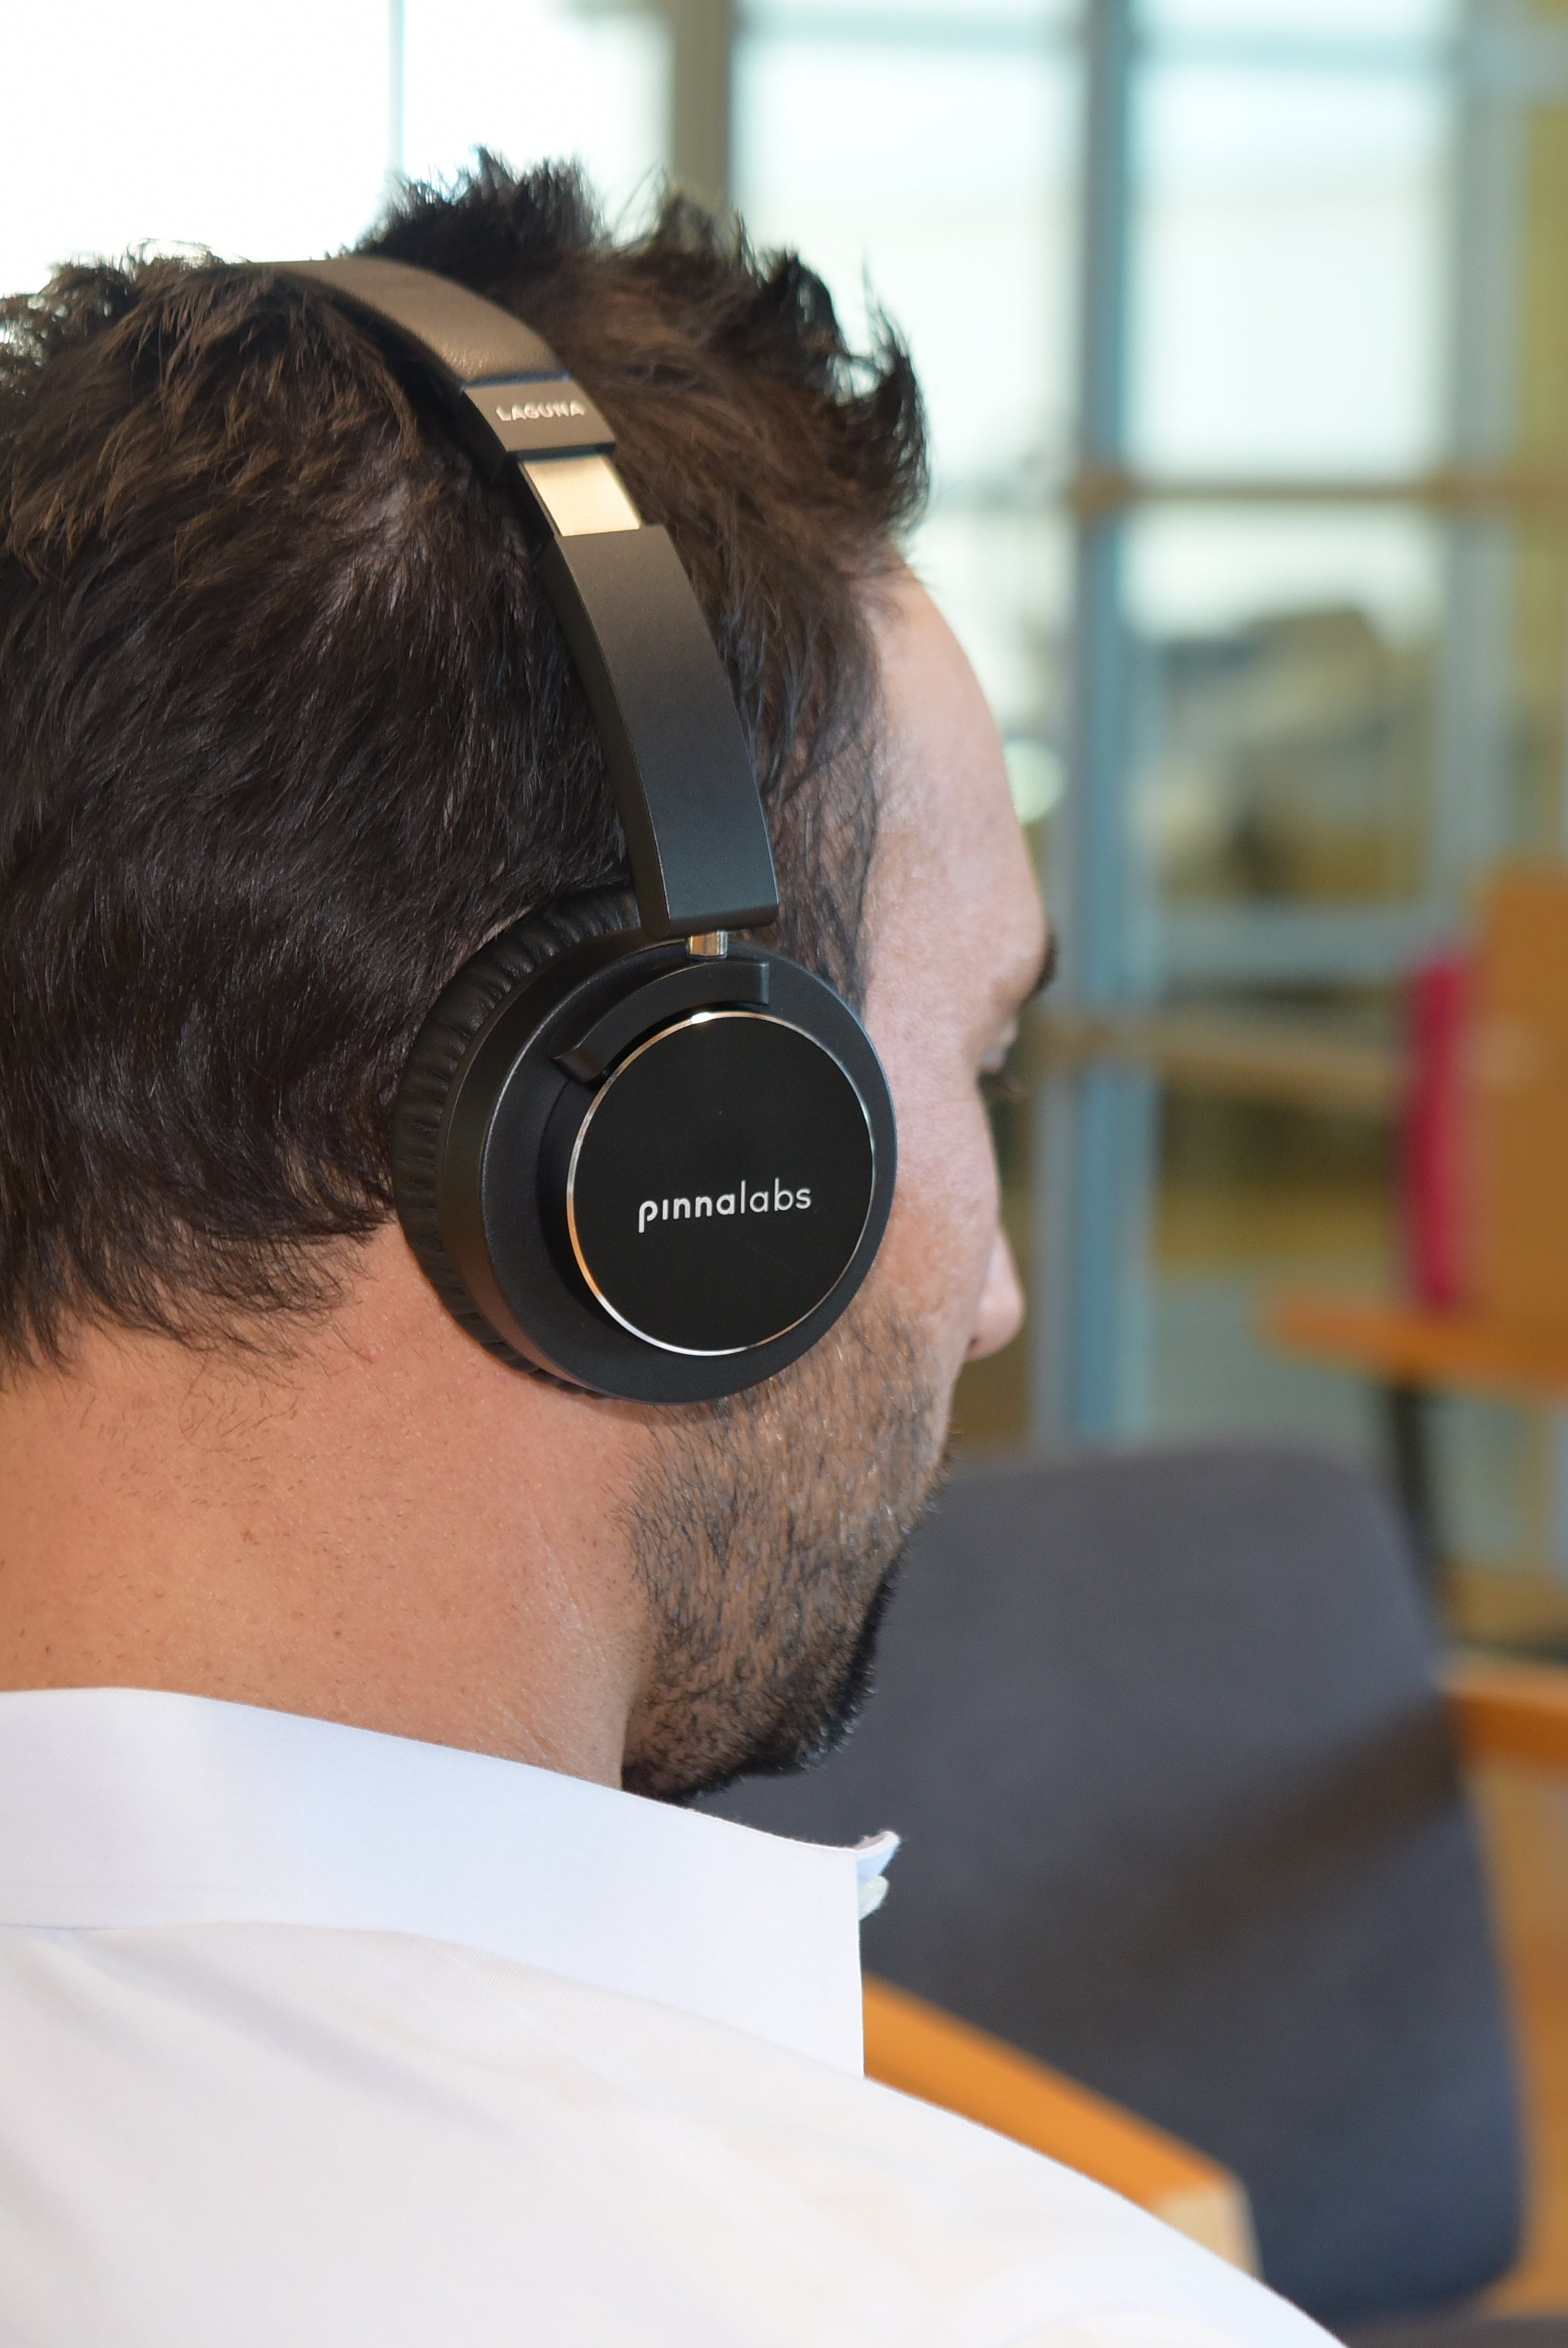 Man listens to Pinna Labs' LAGUNA Safe Volume headphone in office.